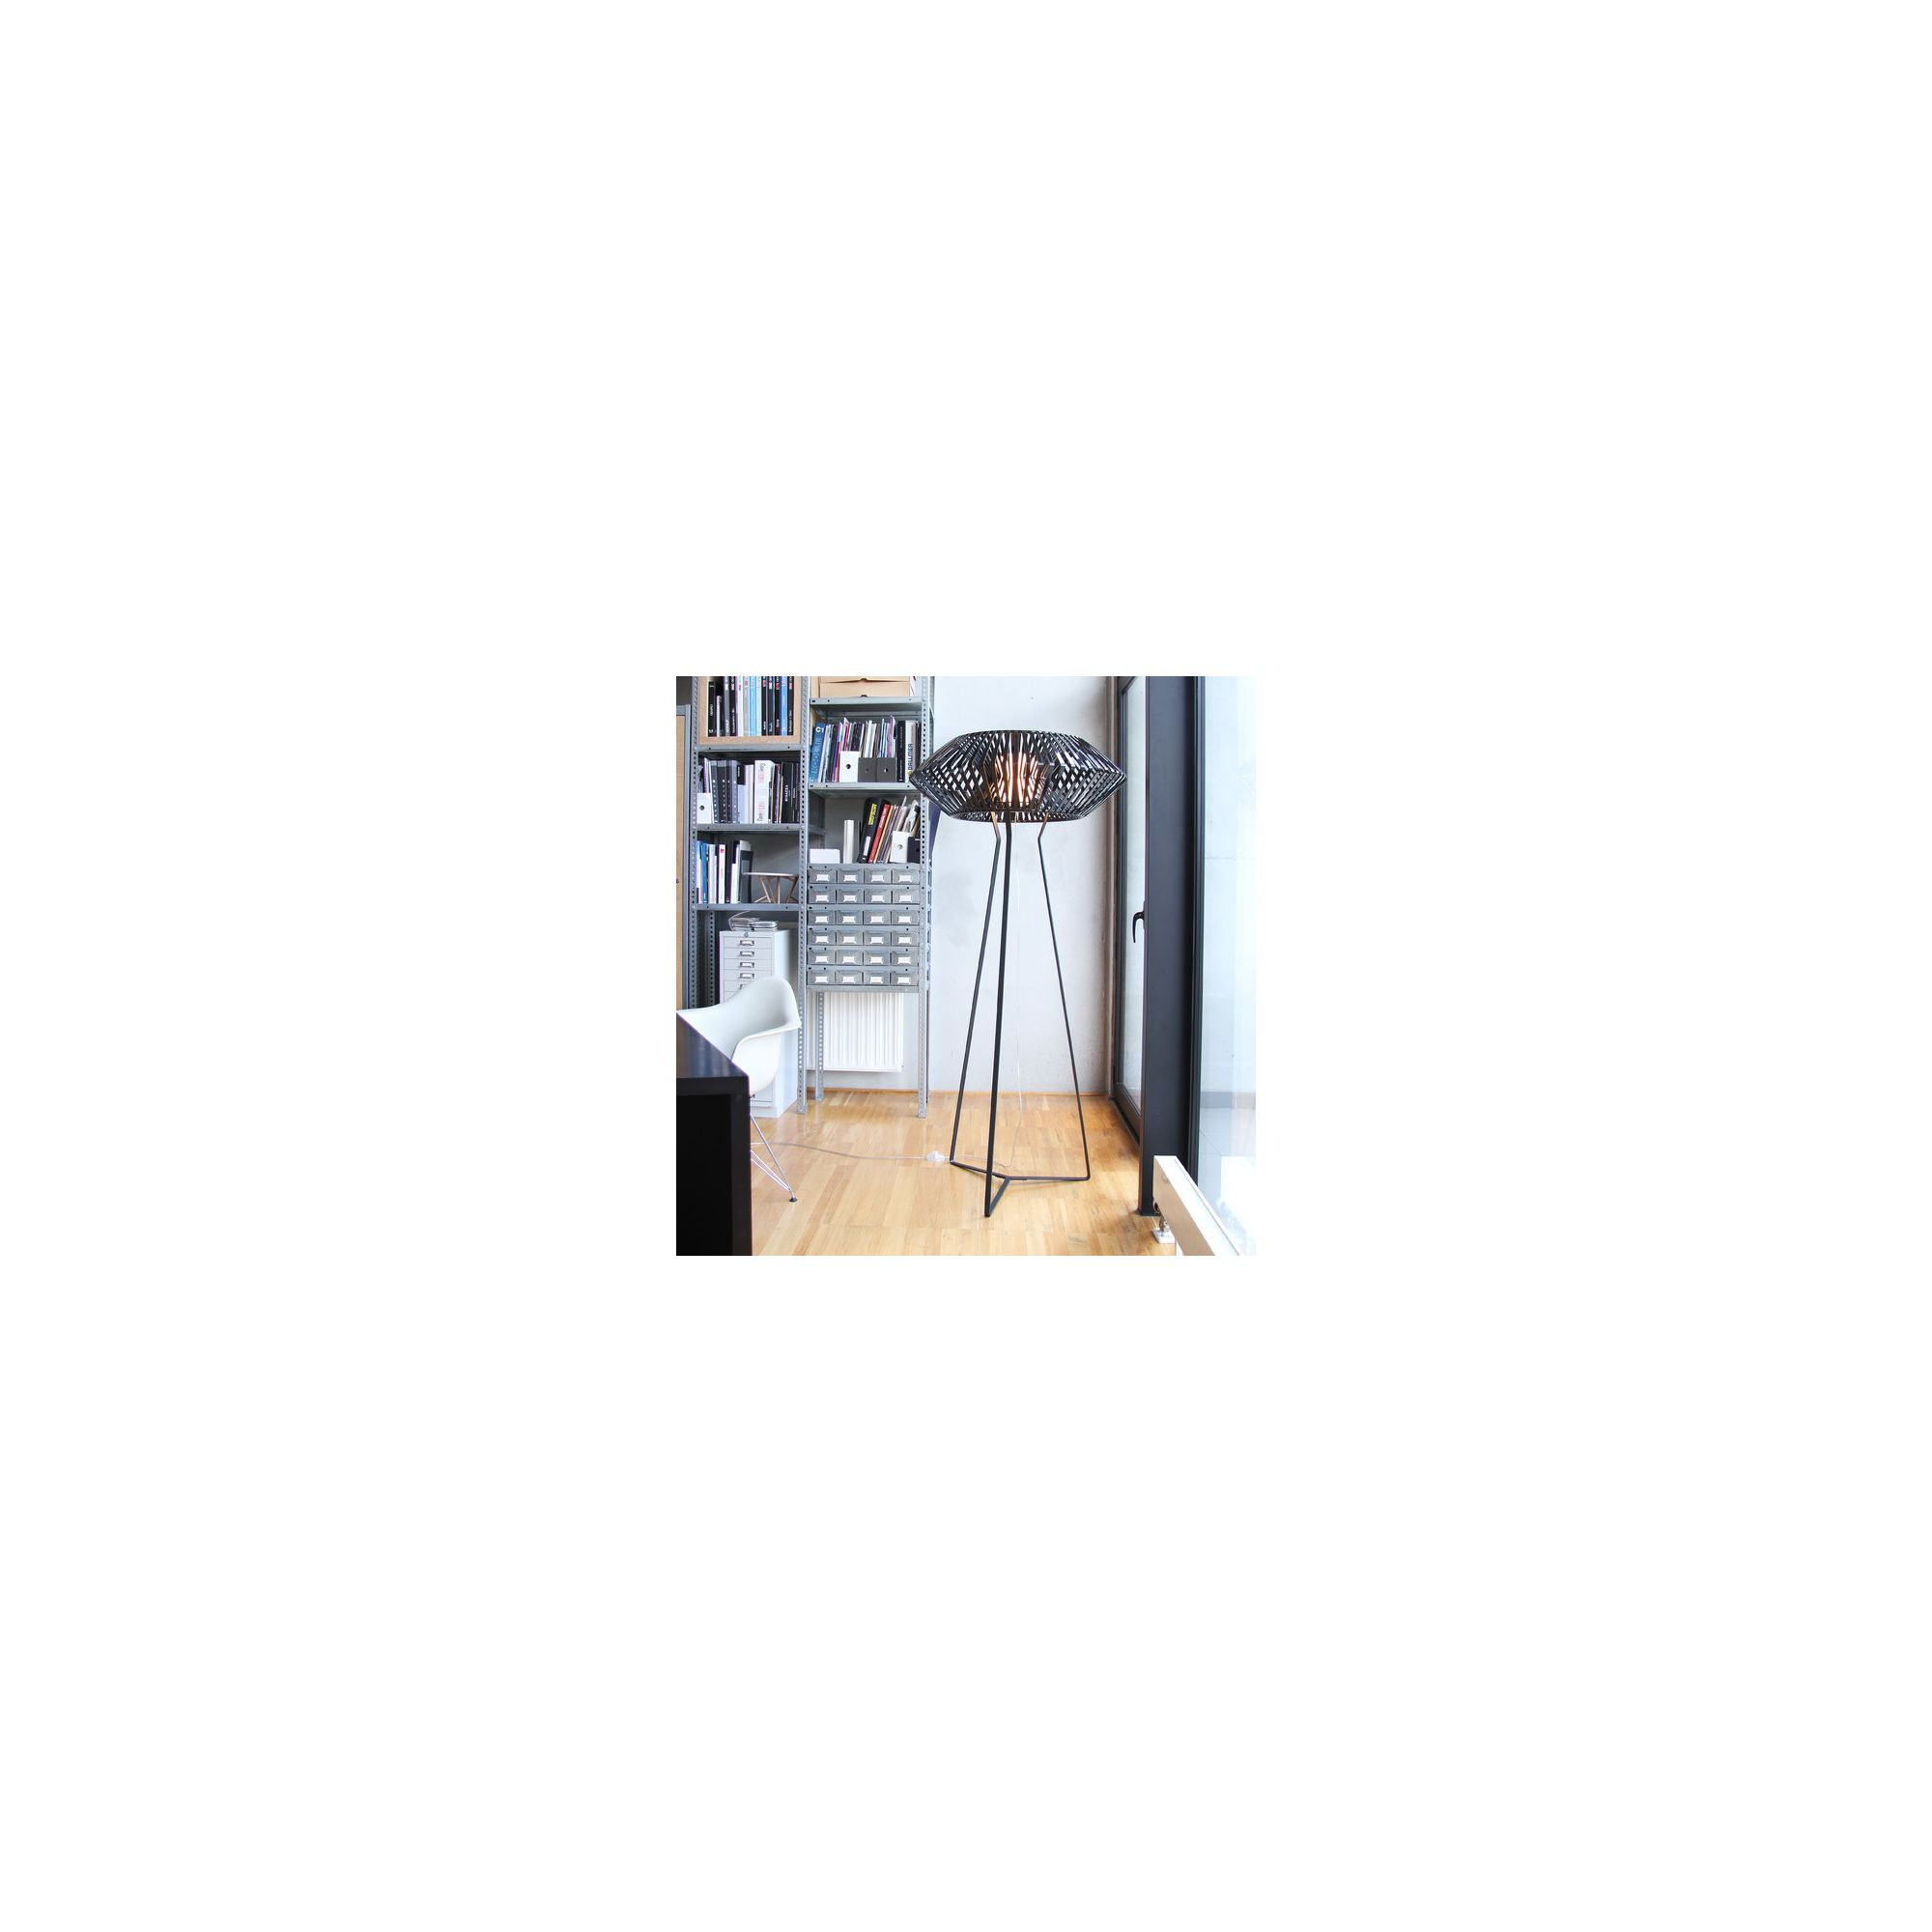 Arturo Alvarez V Floor Lamp - Black Painted Metal - Black at Tesco Direct